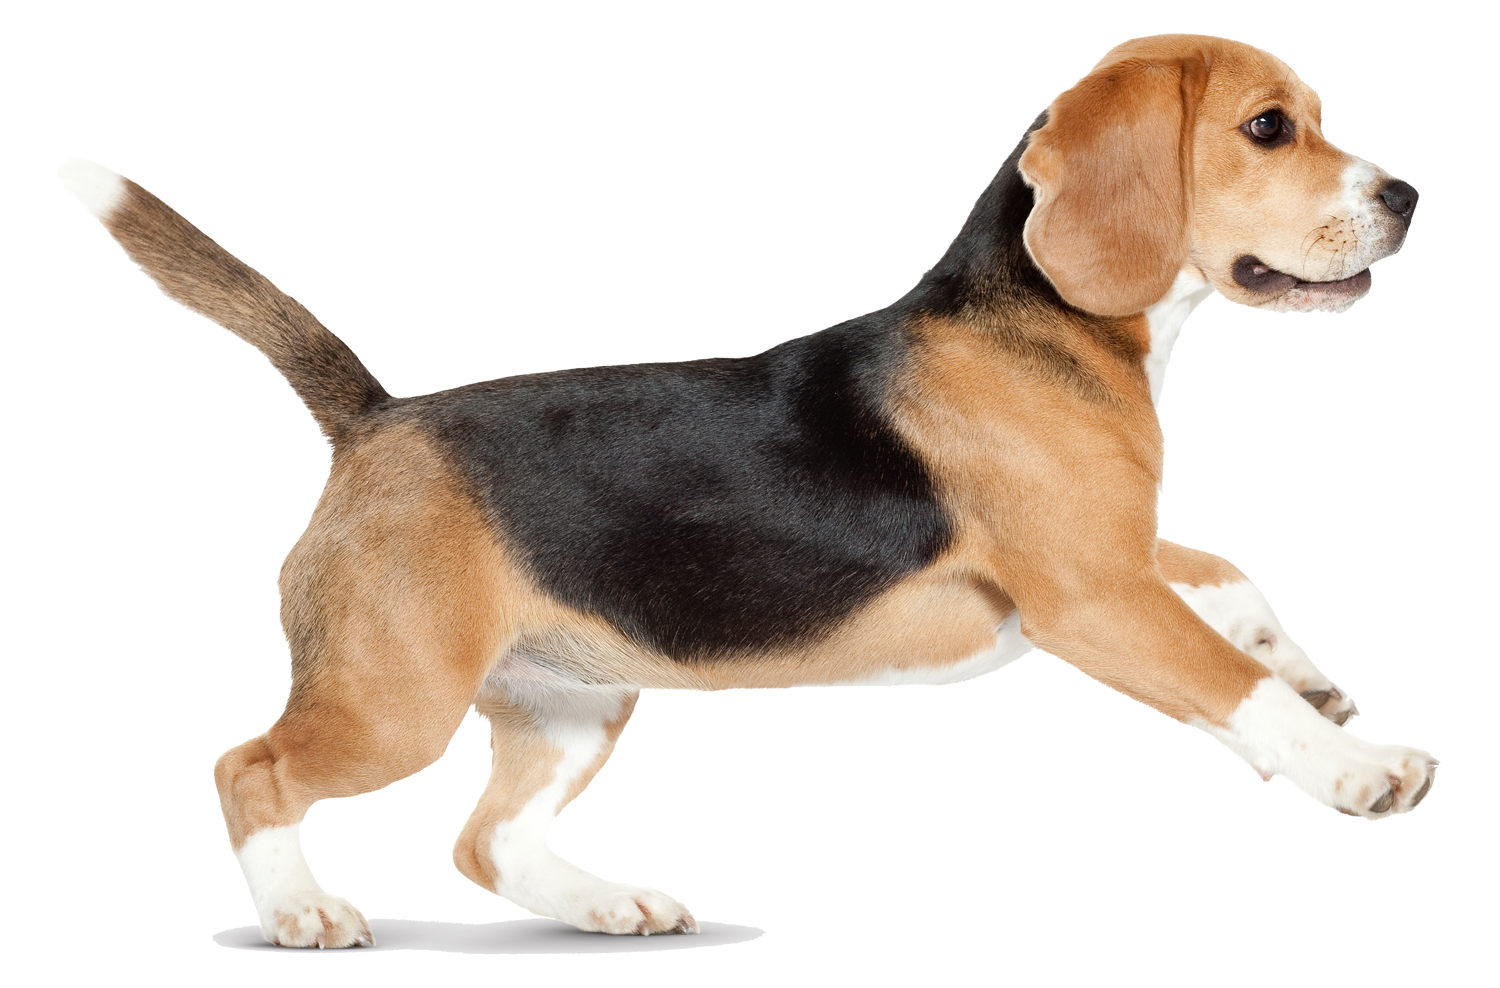 Dog walking png. Image dogs puppy pictures